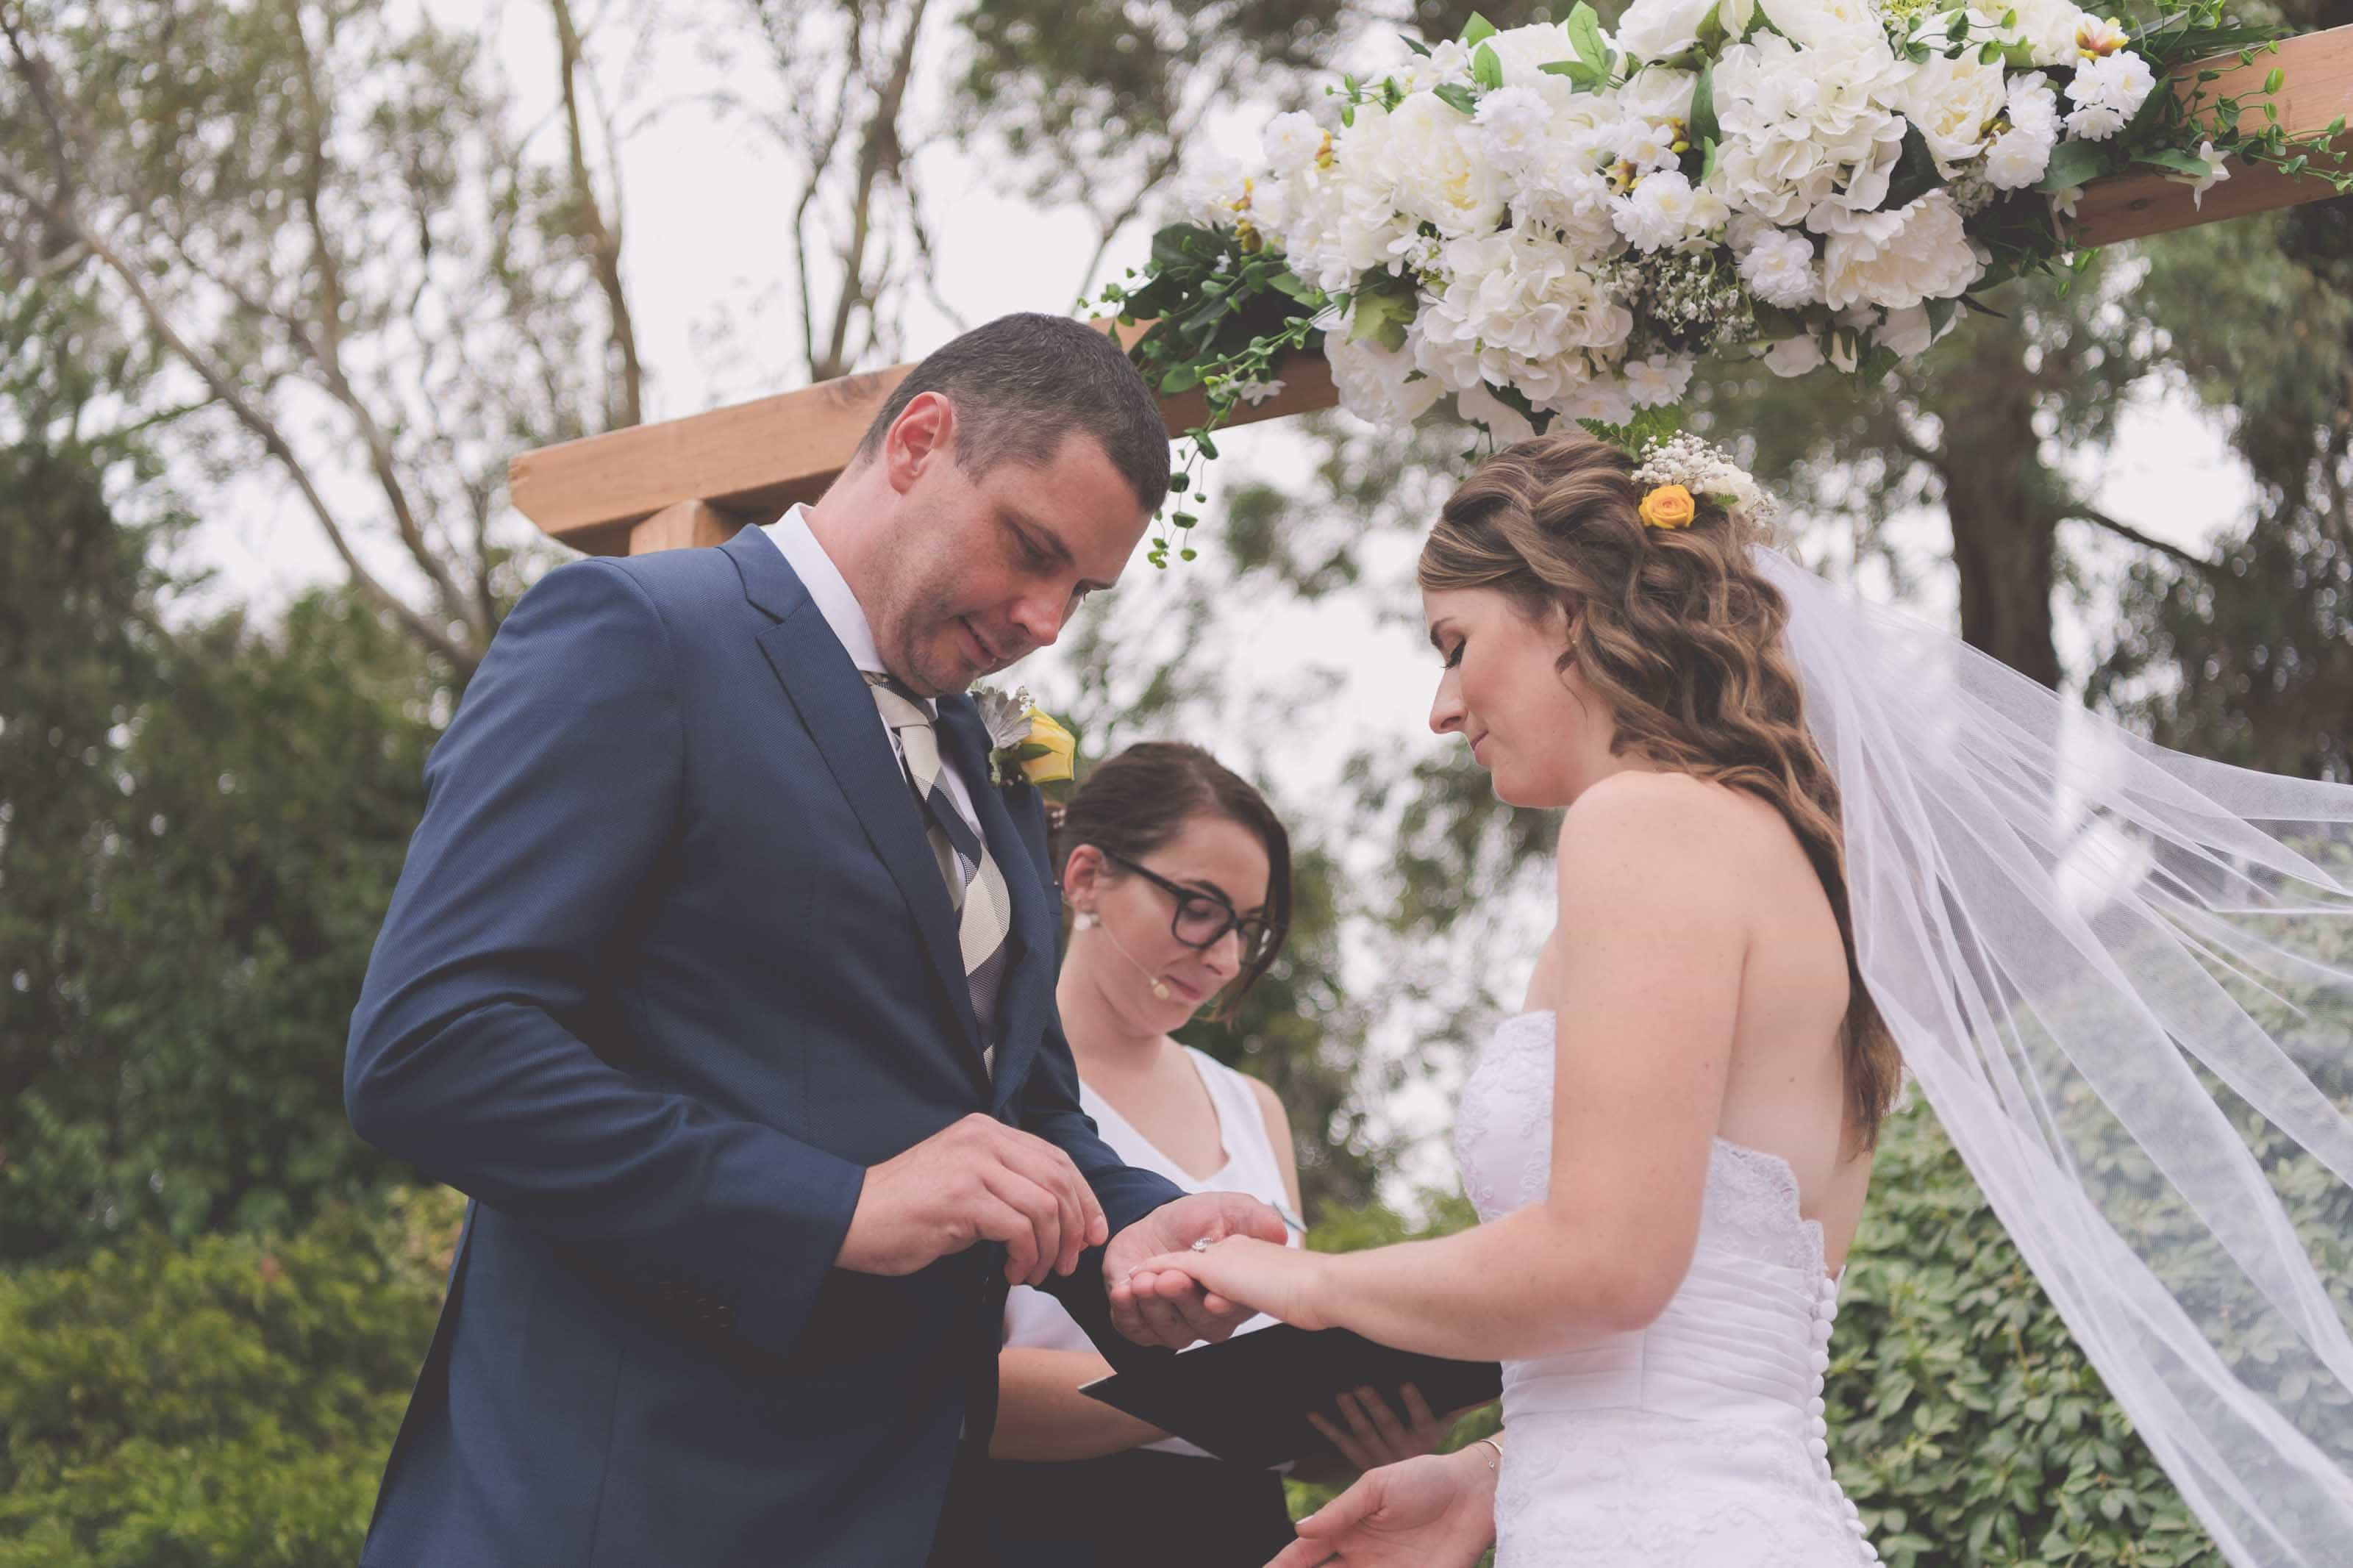 Wedding Photography Melbourne by Pause The Moment - Groom puts his ring on his bride at a Melbourne wedding - Paringa Estate Wedding Photographer